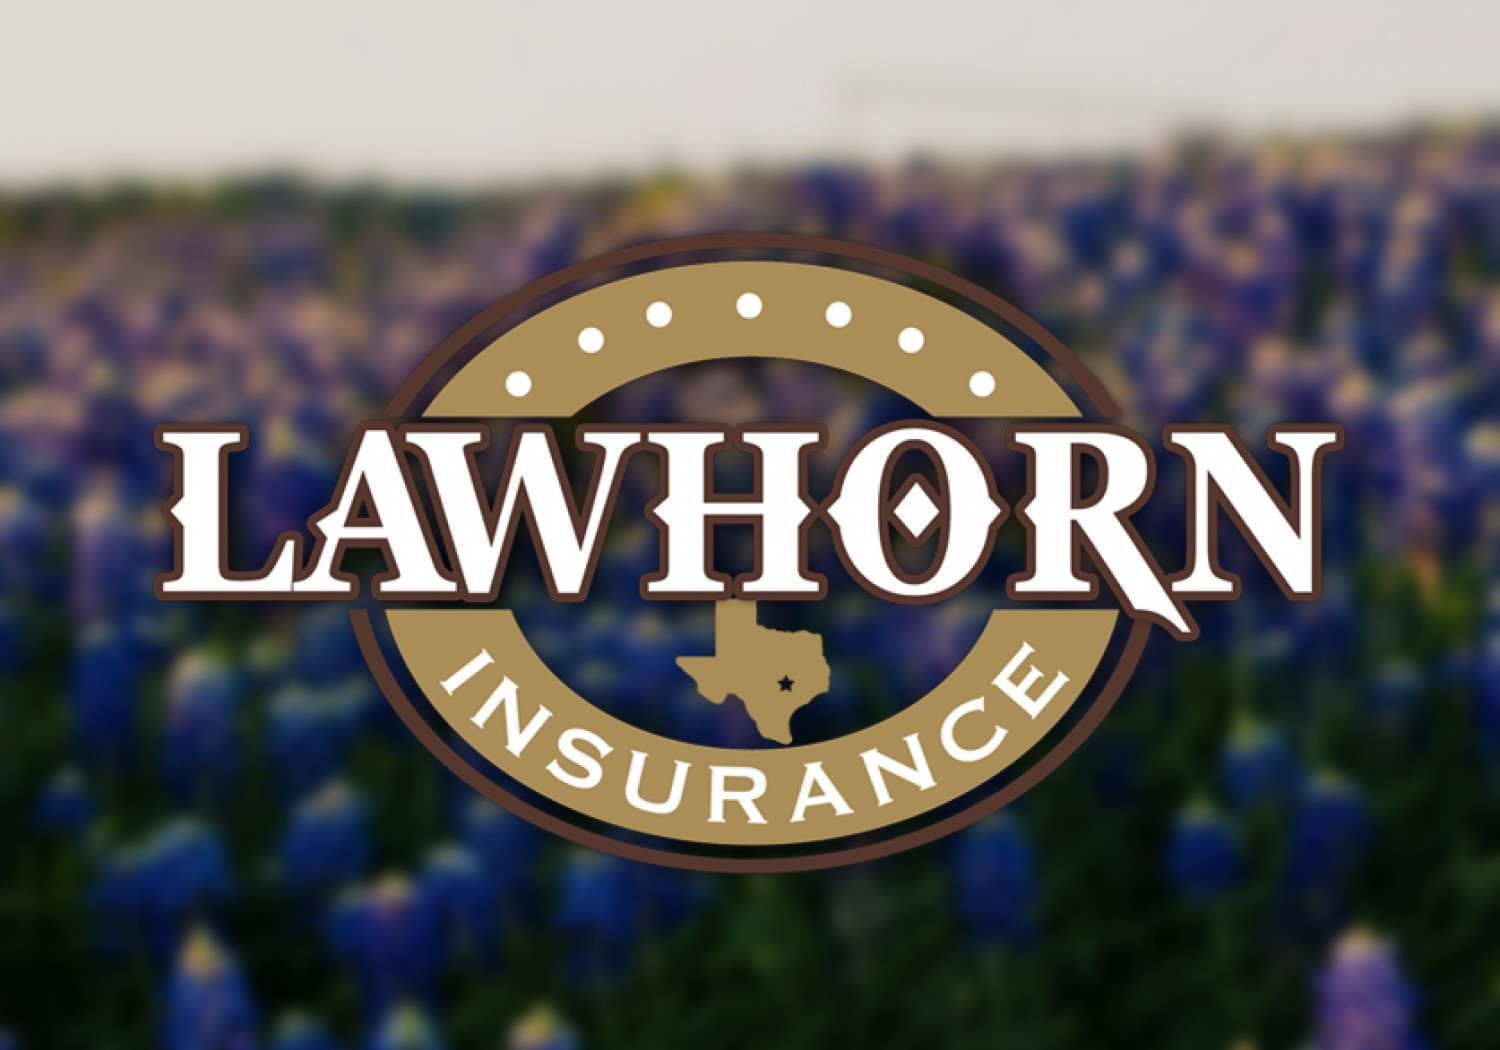 Lawhorn Insurance